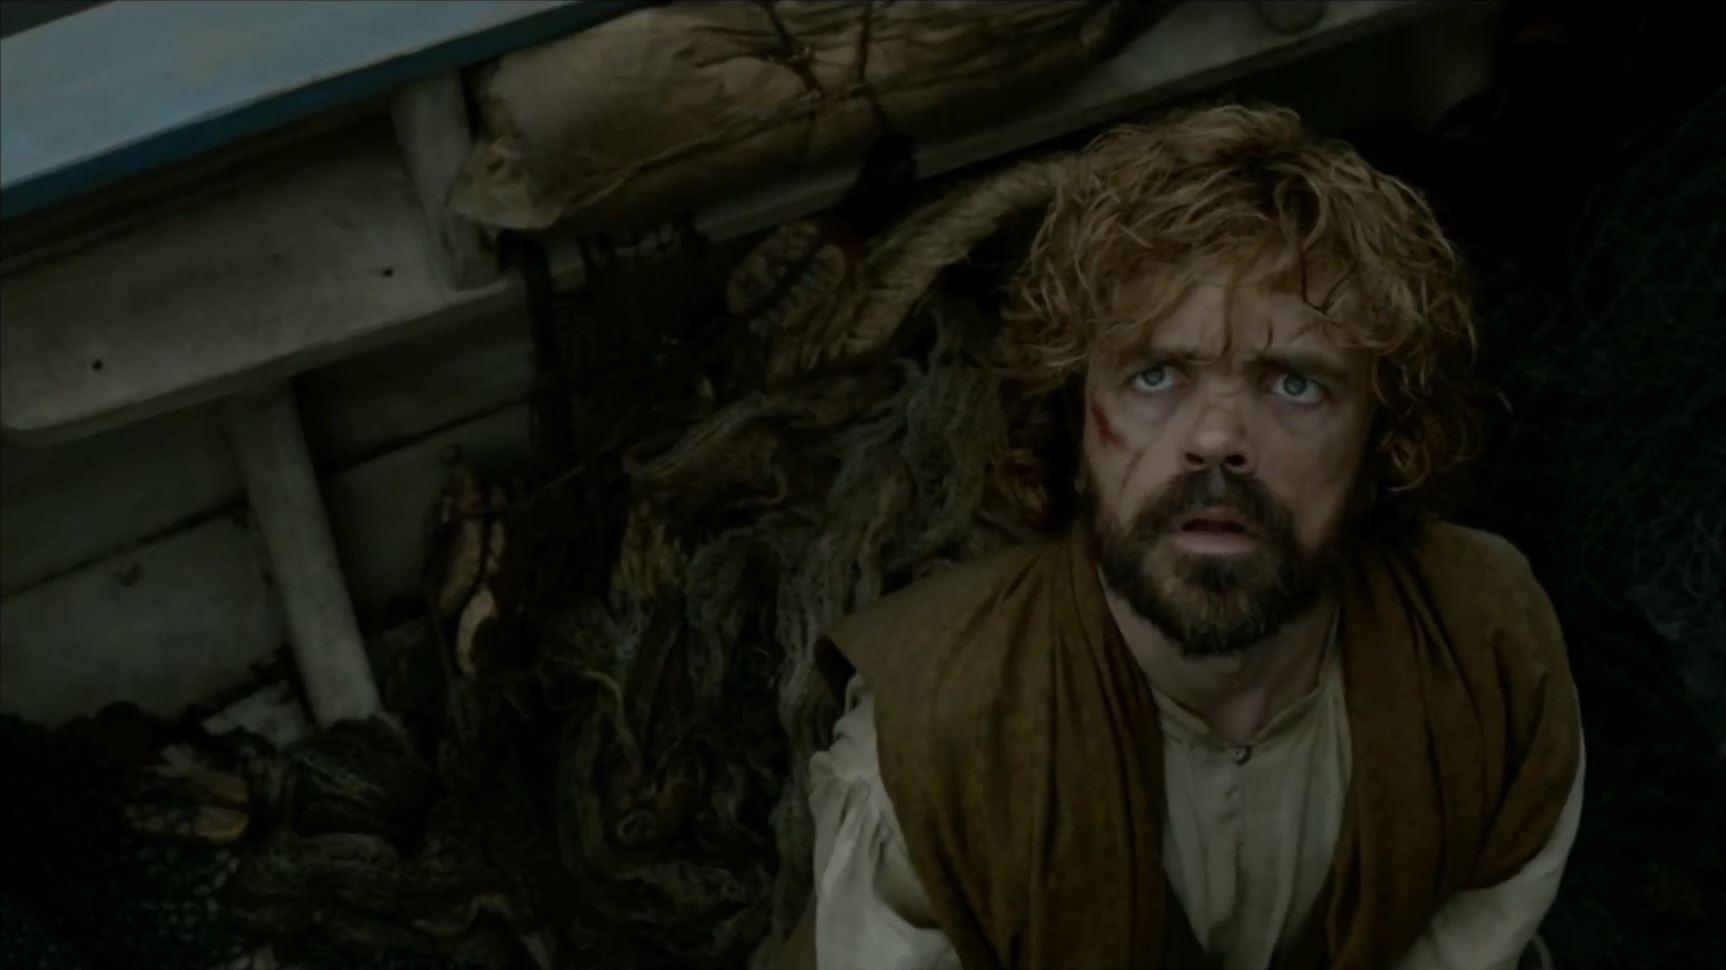 Game of Thrones Season 5 Trailer 2. Peter Dinklage as Tyrion Lannister